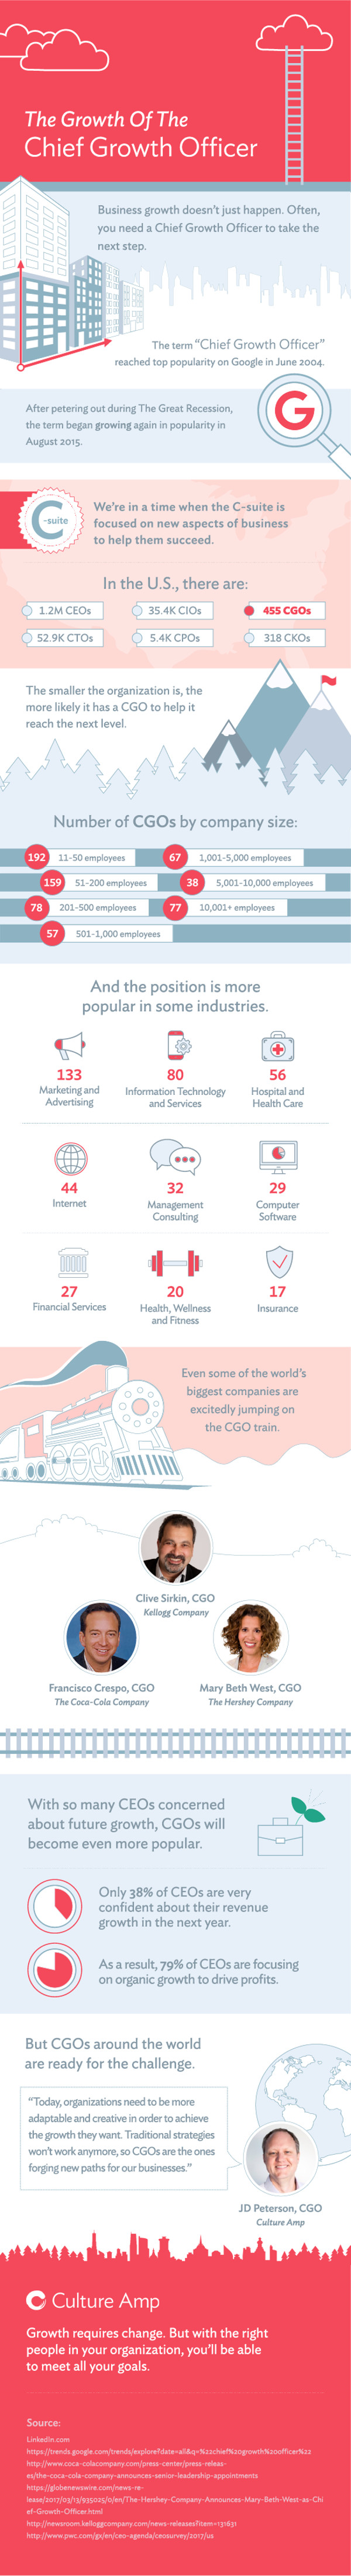 The Growth of the Chief Growth Officer Infographic